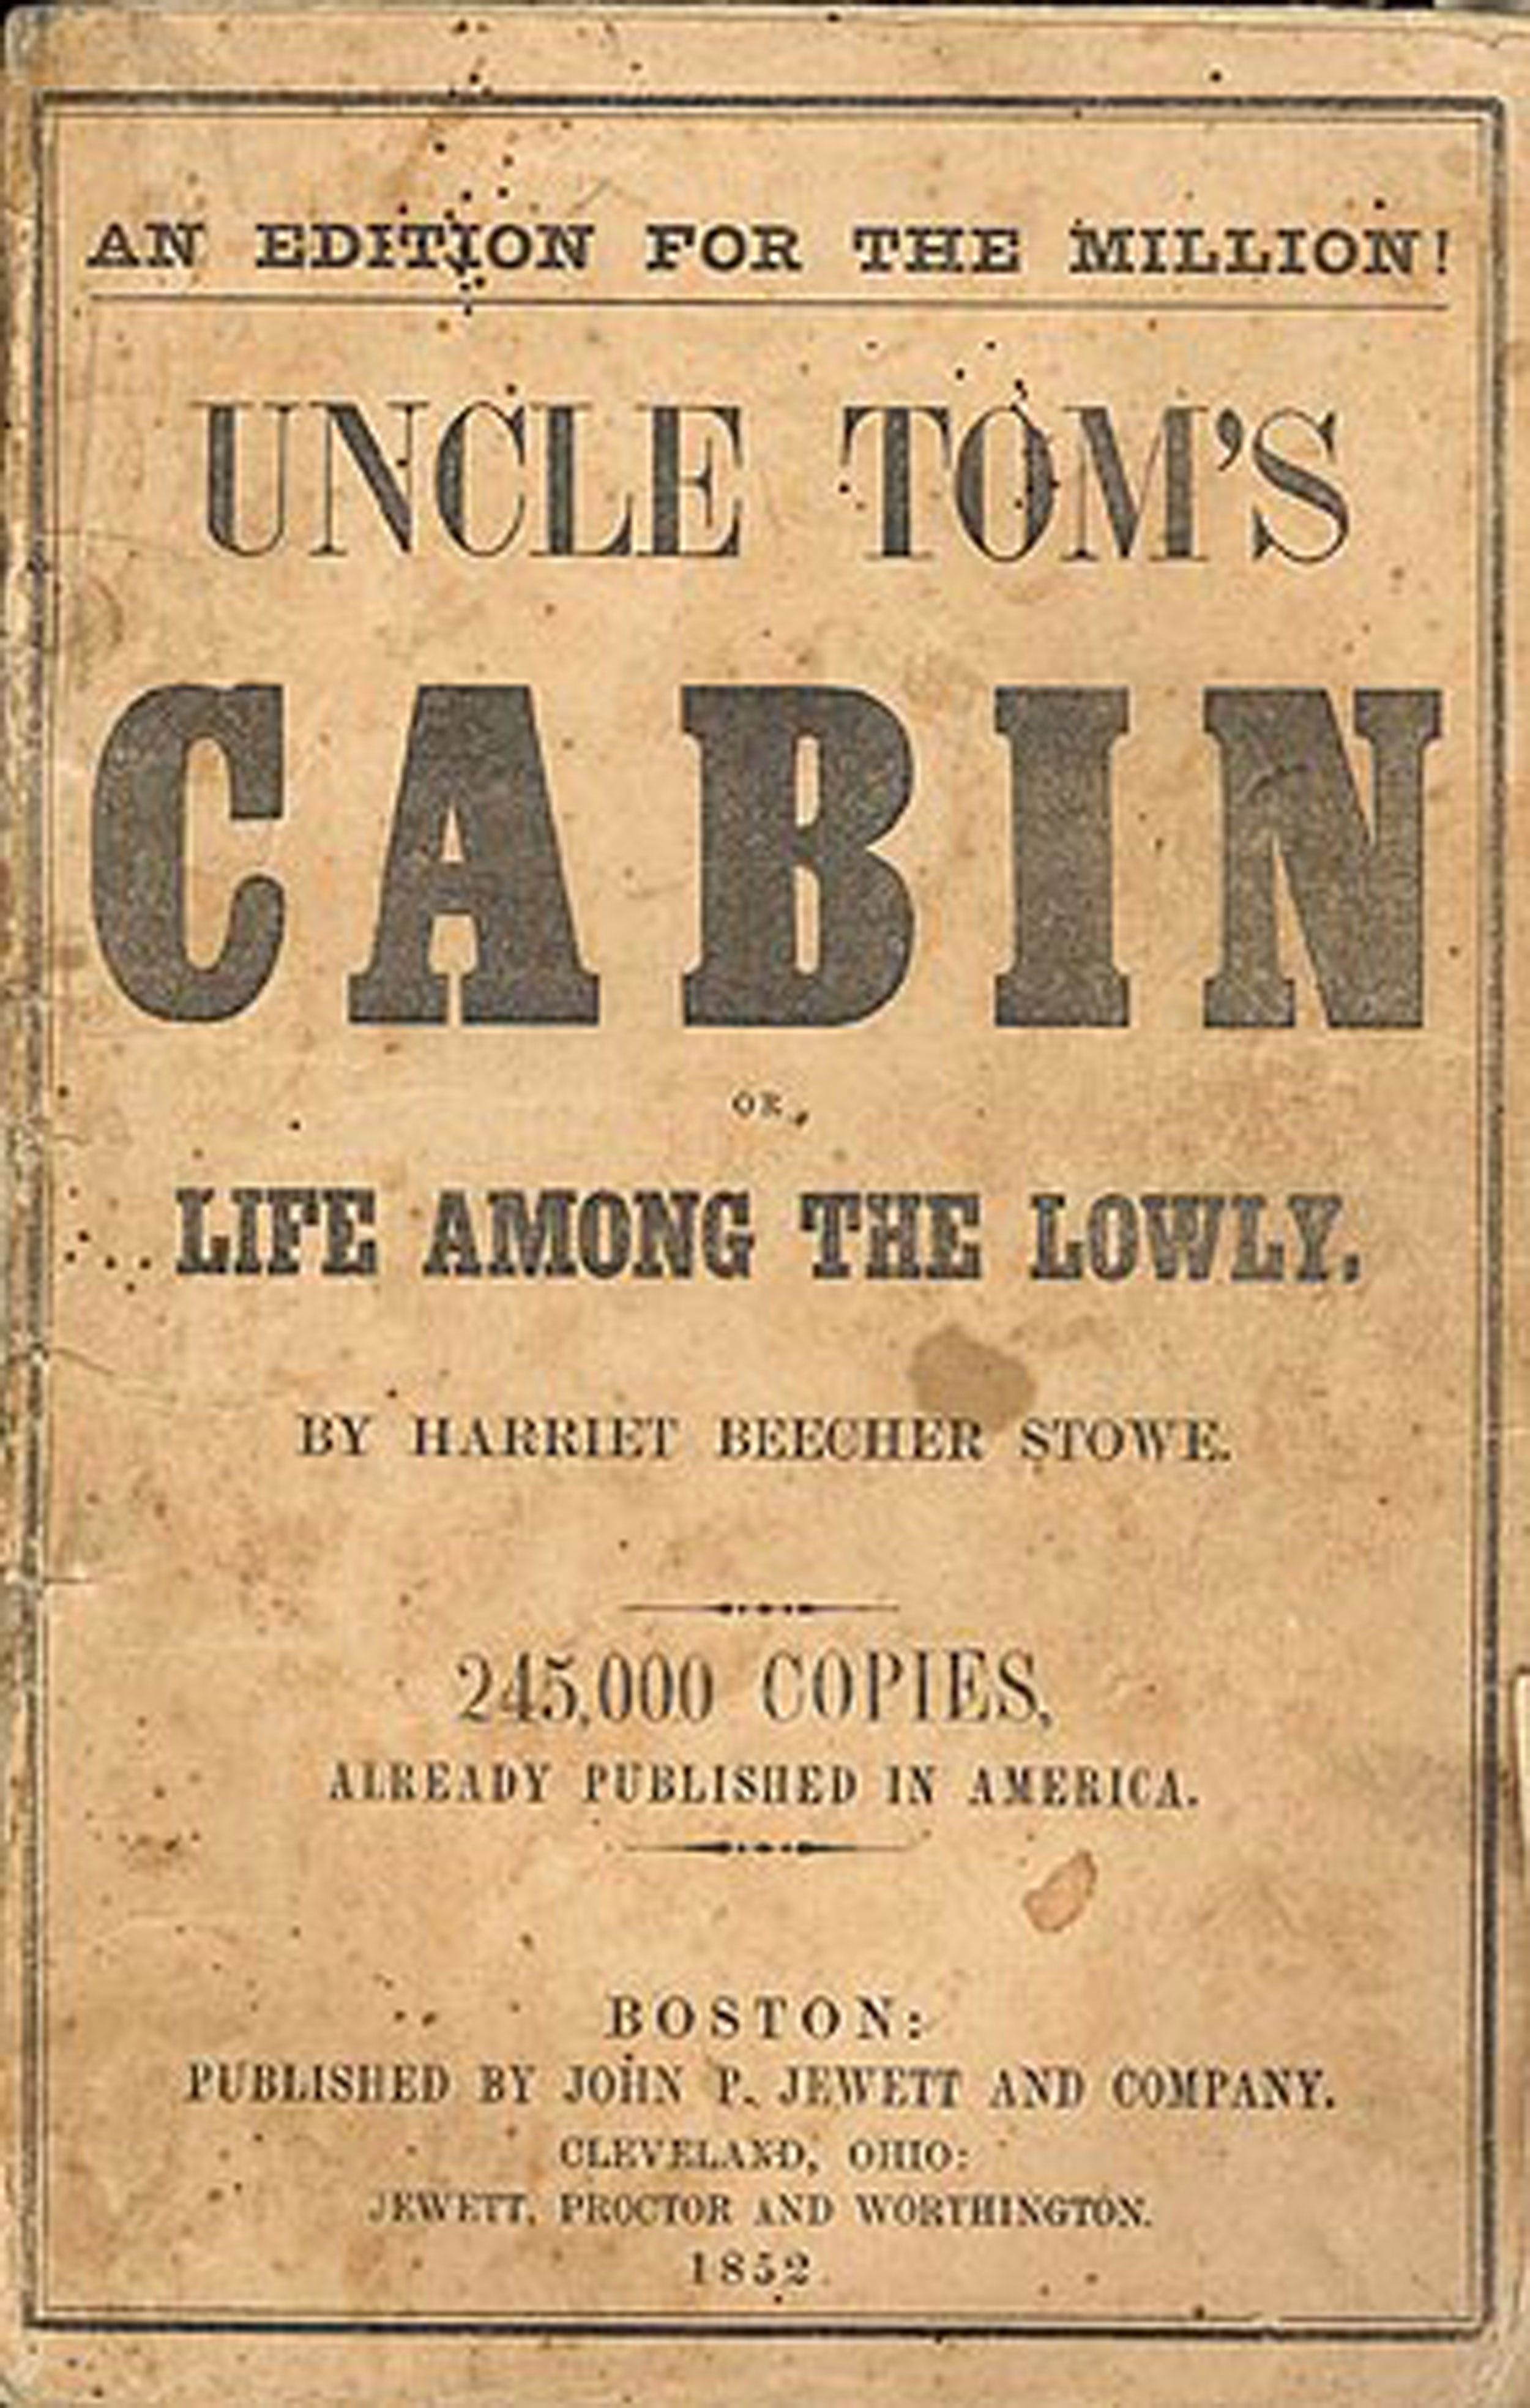 Books In The 1800s—how Uncle Tom's Cabin Helped Start A War